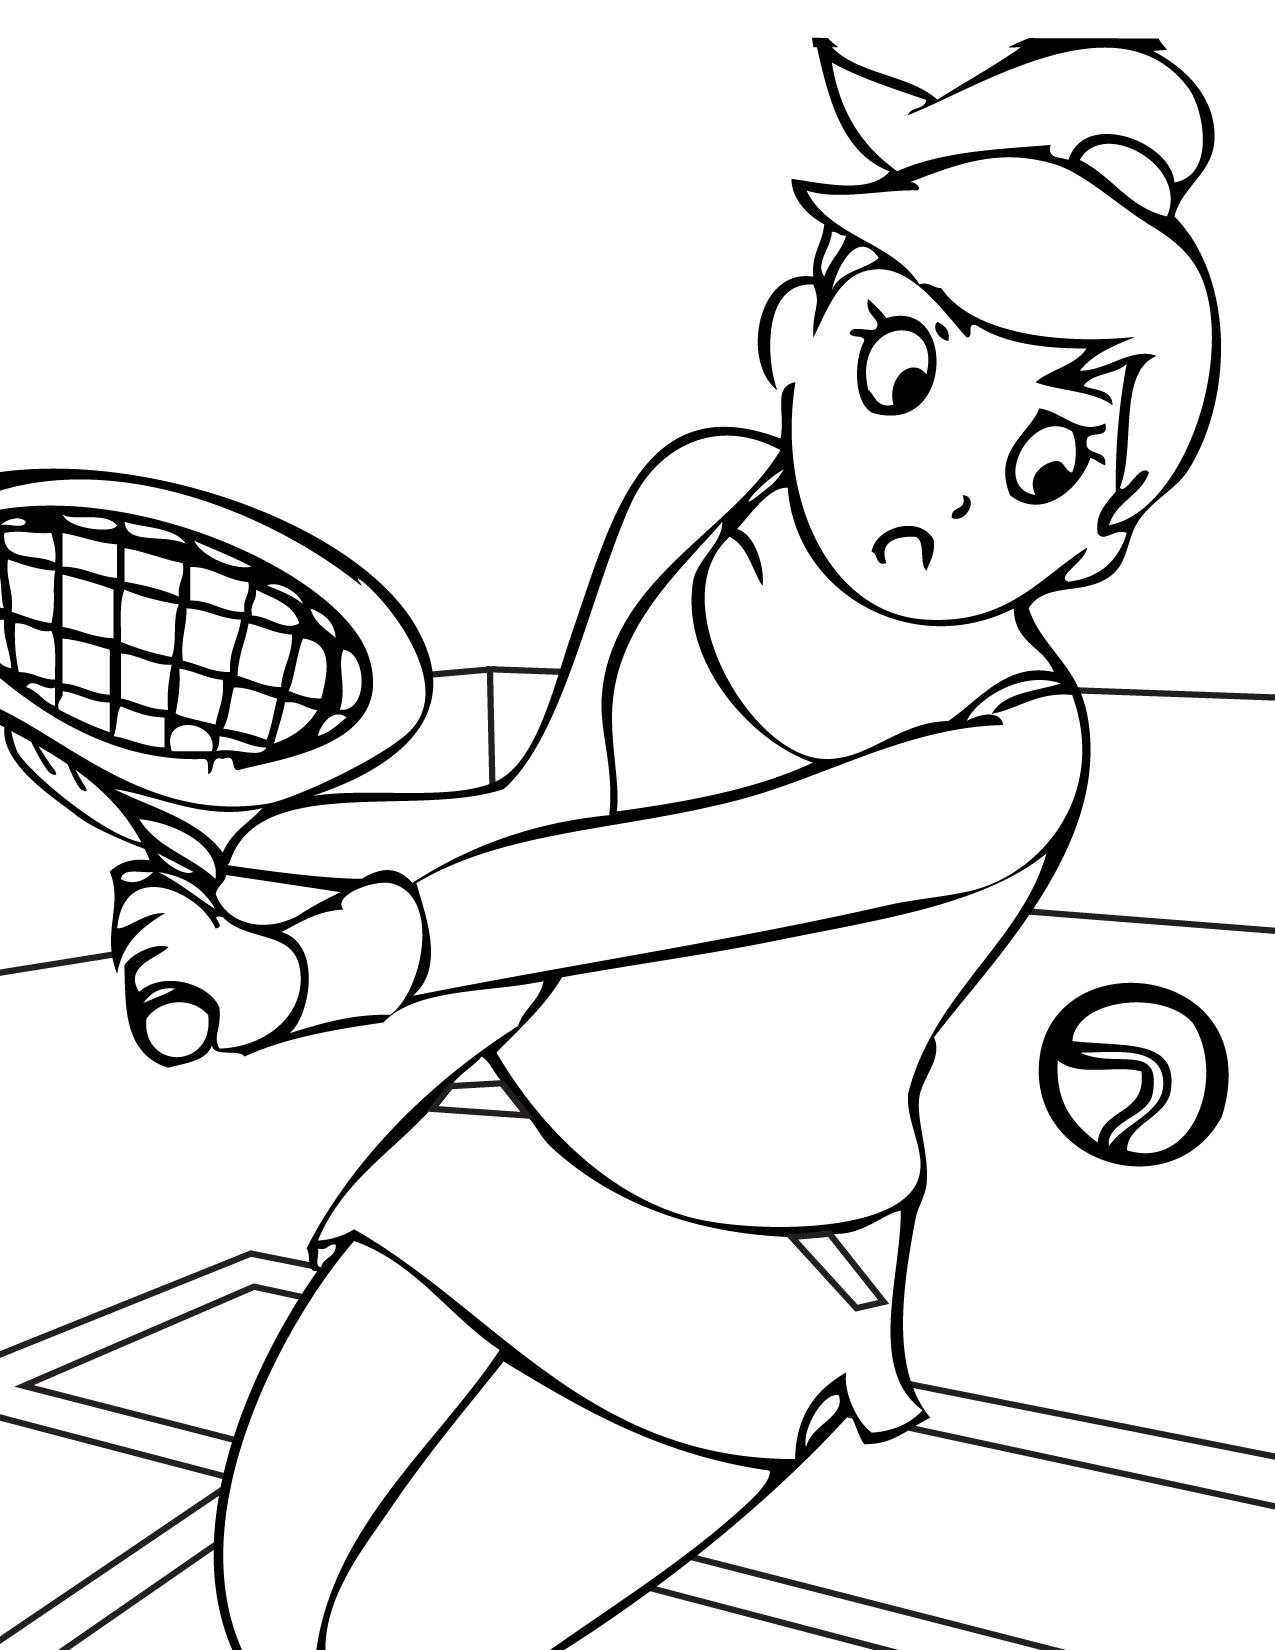 net coloring pages for kids - photo#23